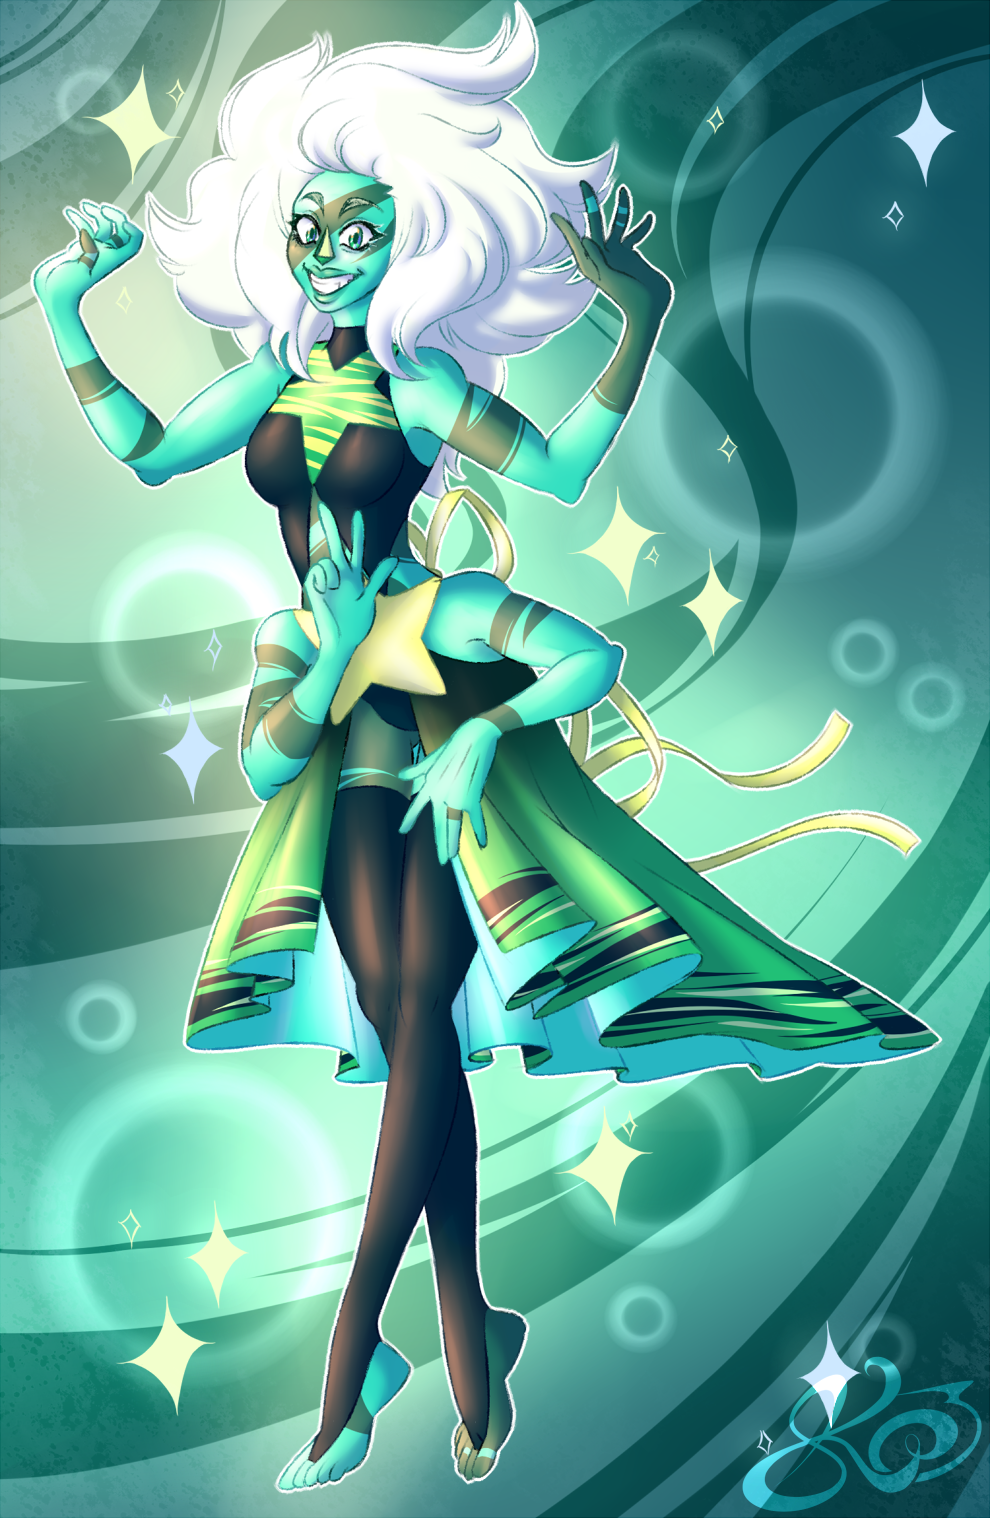 reformed Malachite *~..:  *:.~ Malachite The Crystal Gem ~.:* C> :..~* reformed lapis will come soon